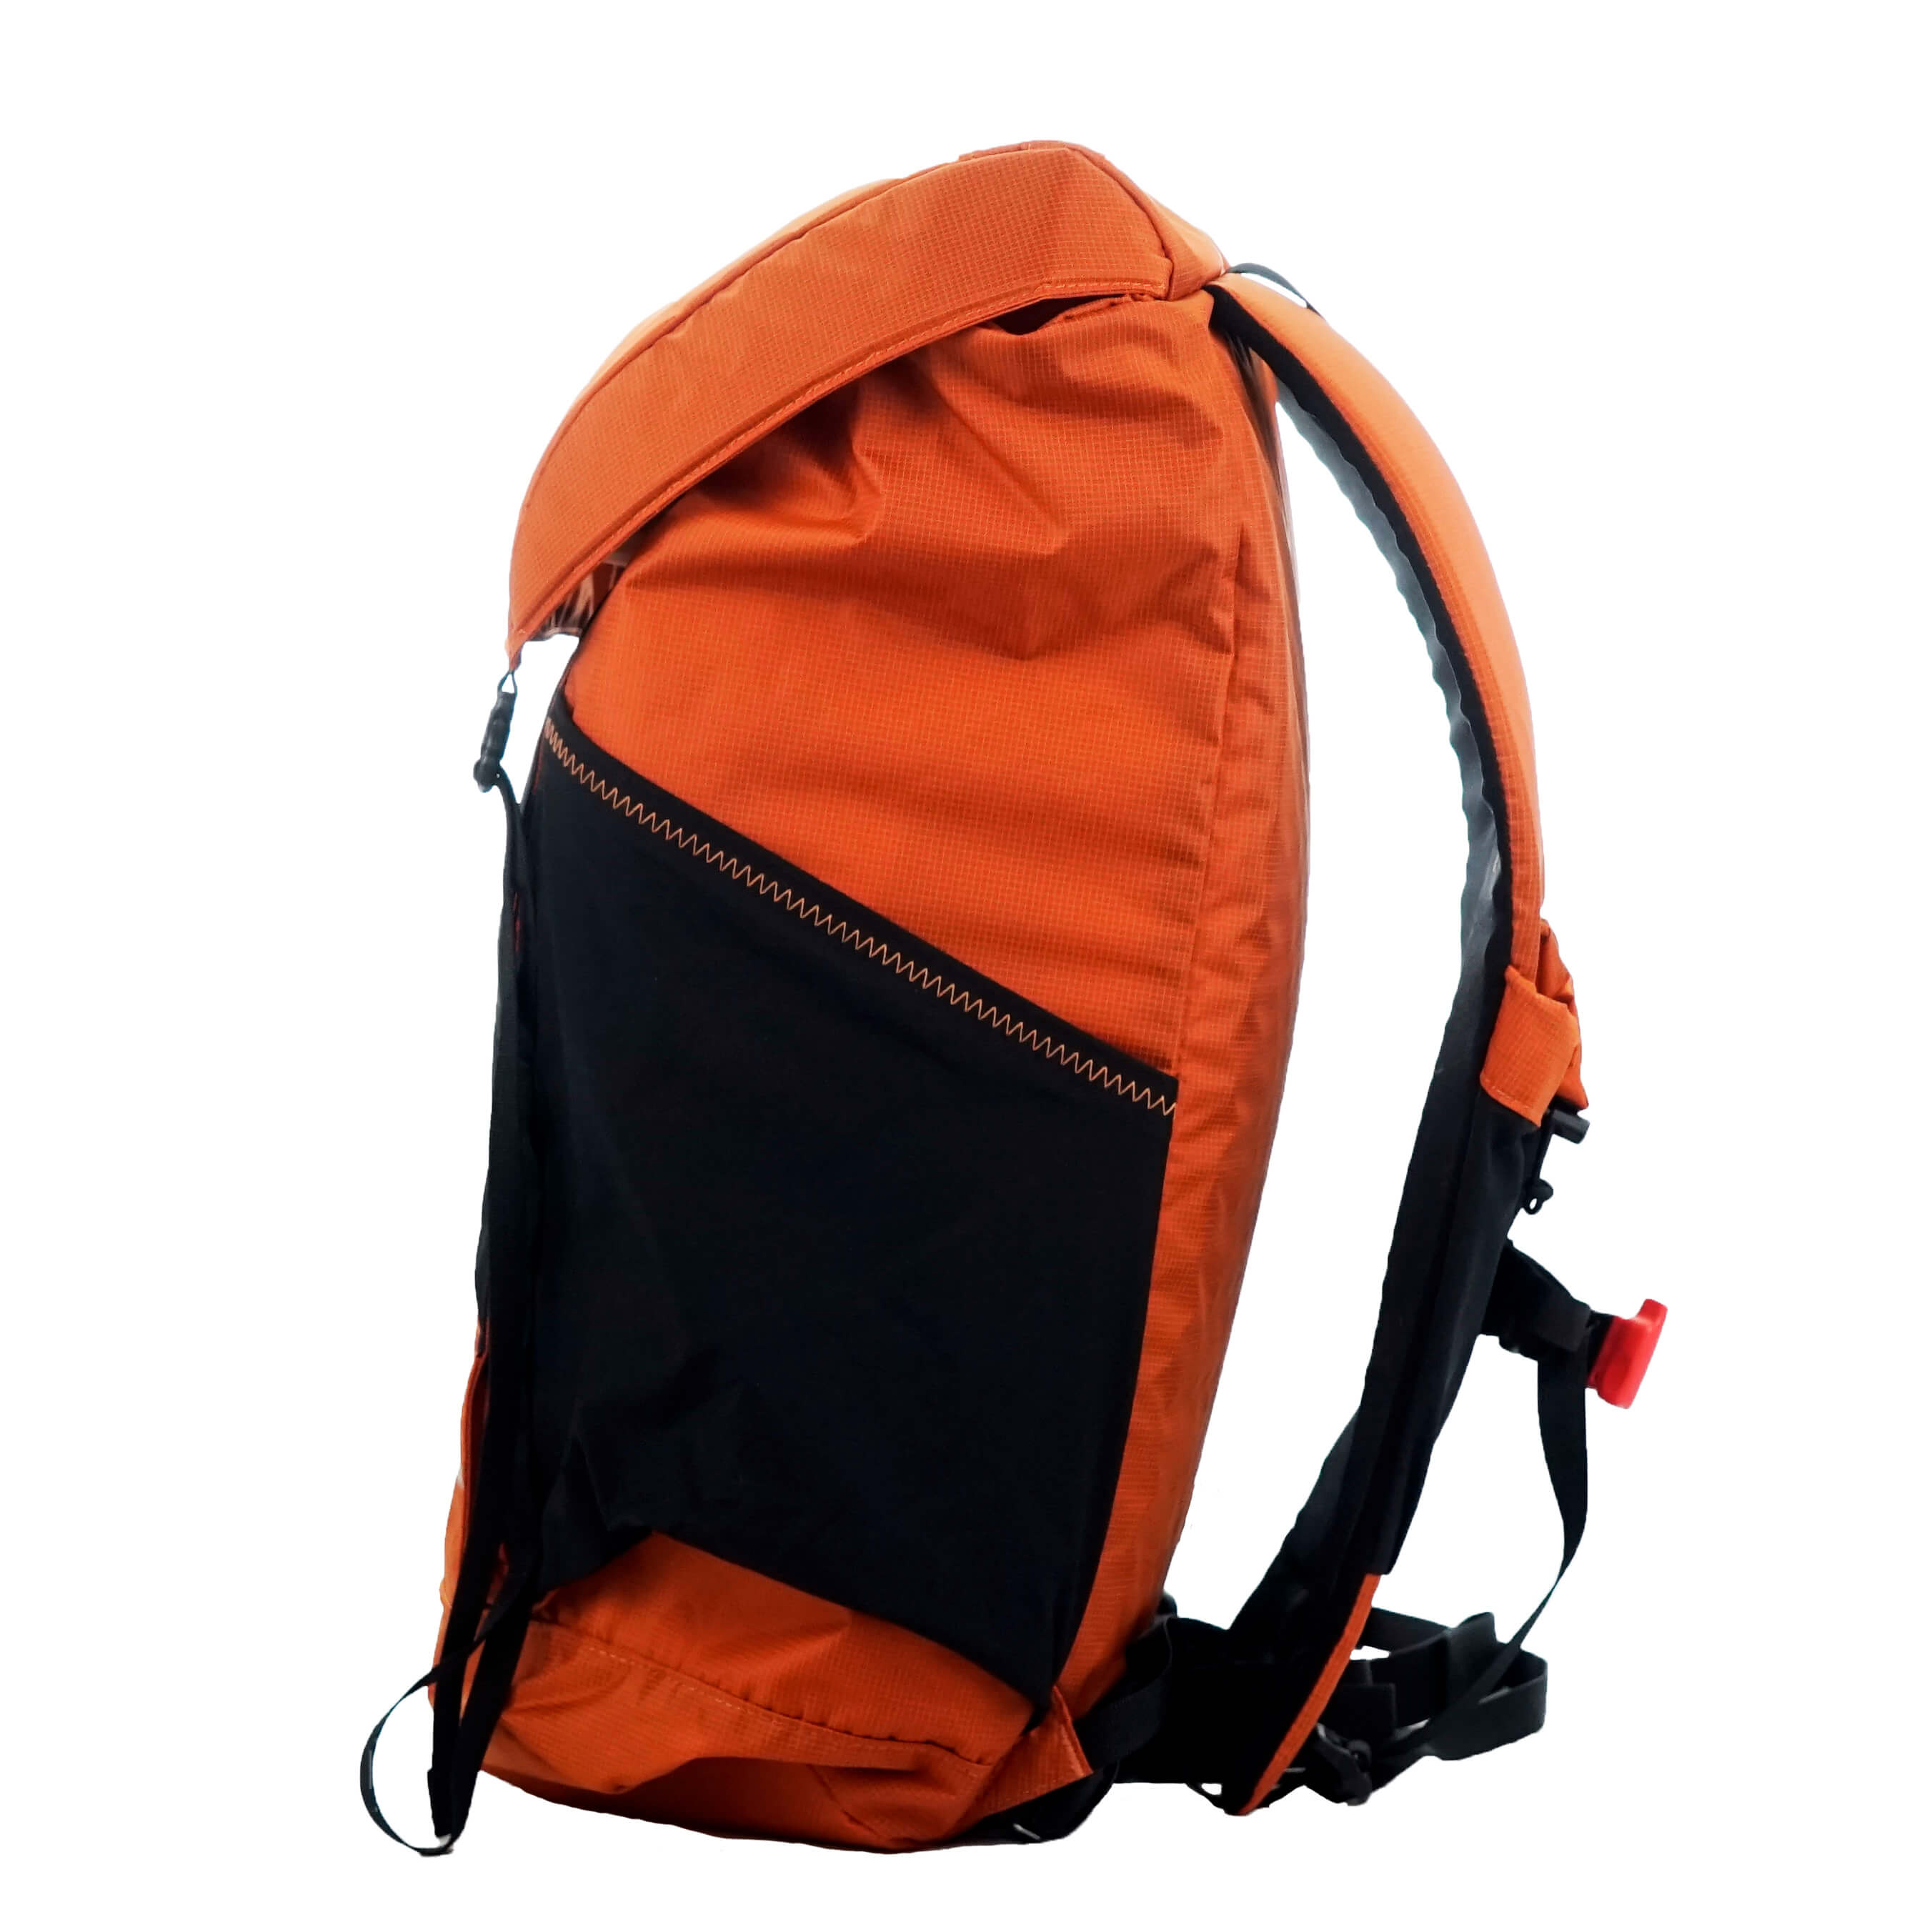 Six Moon Designs Daybreaker Pack    デイブレイカー パック  477g~580g     25L